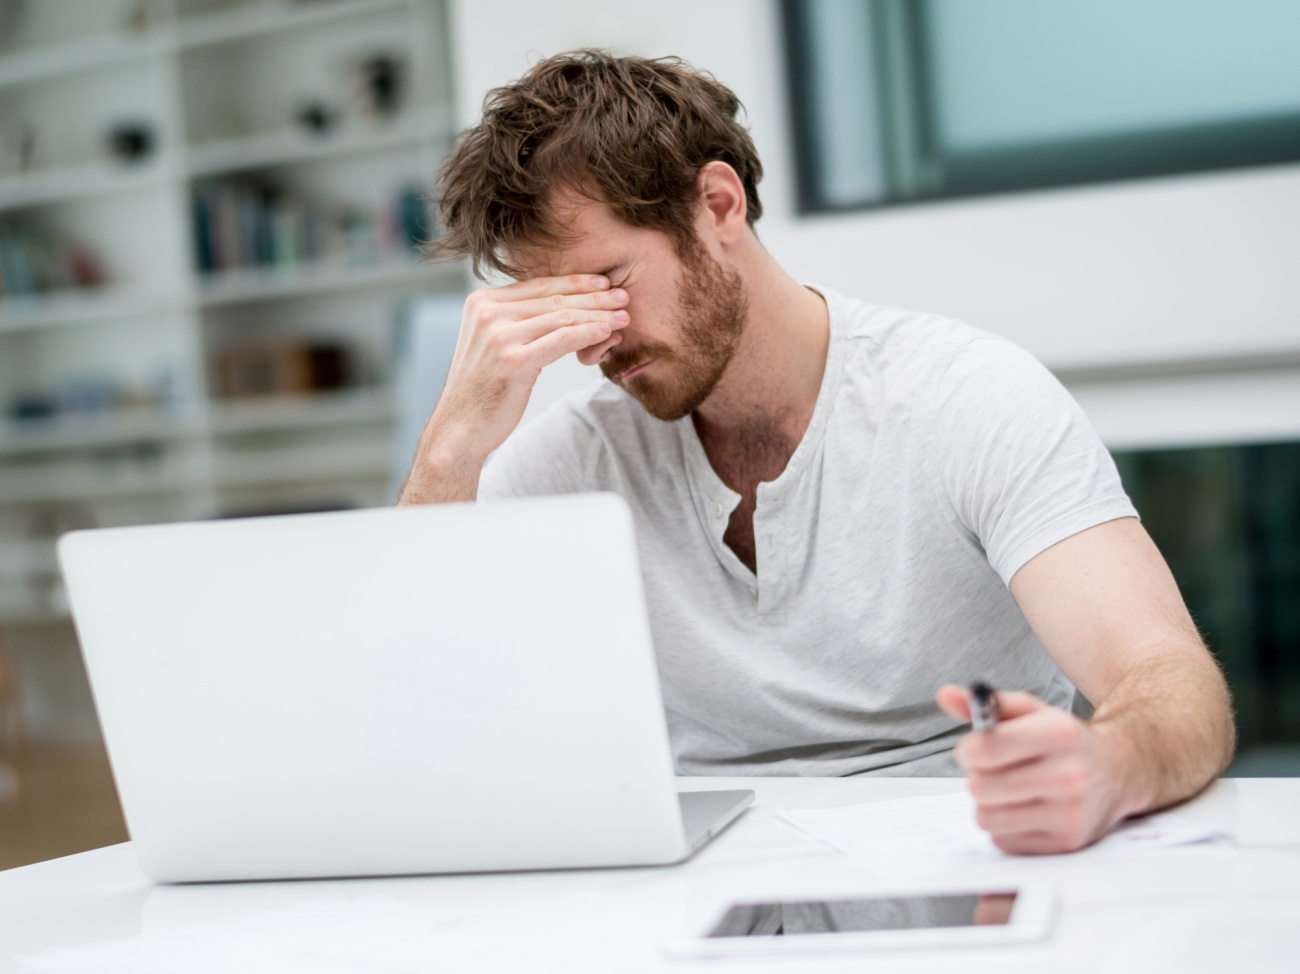 Tired man working online at home on a laptop computer - freelance designer